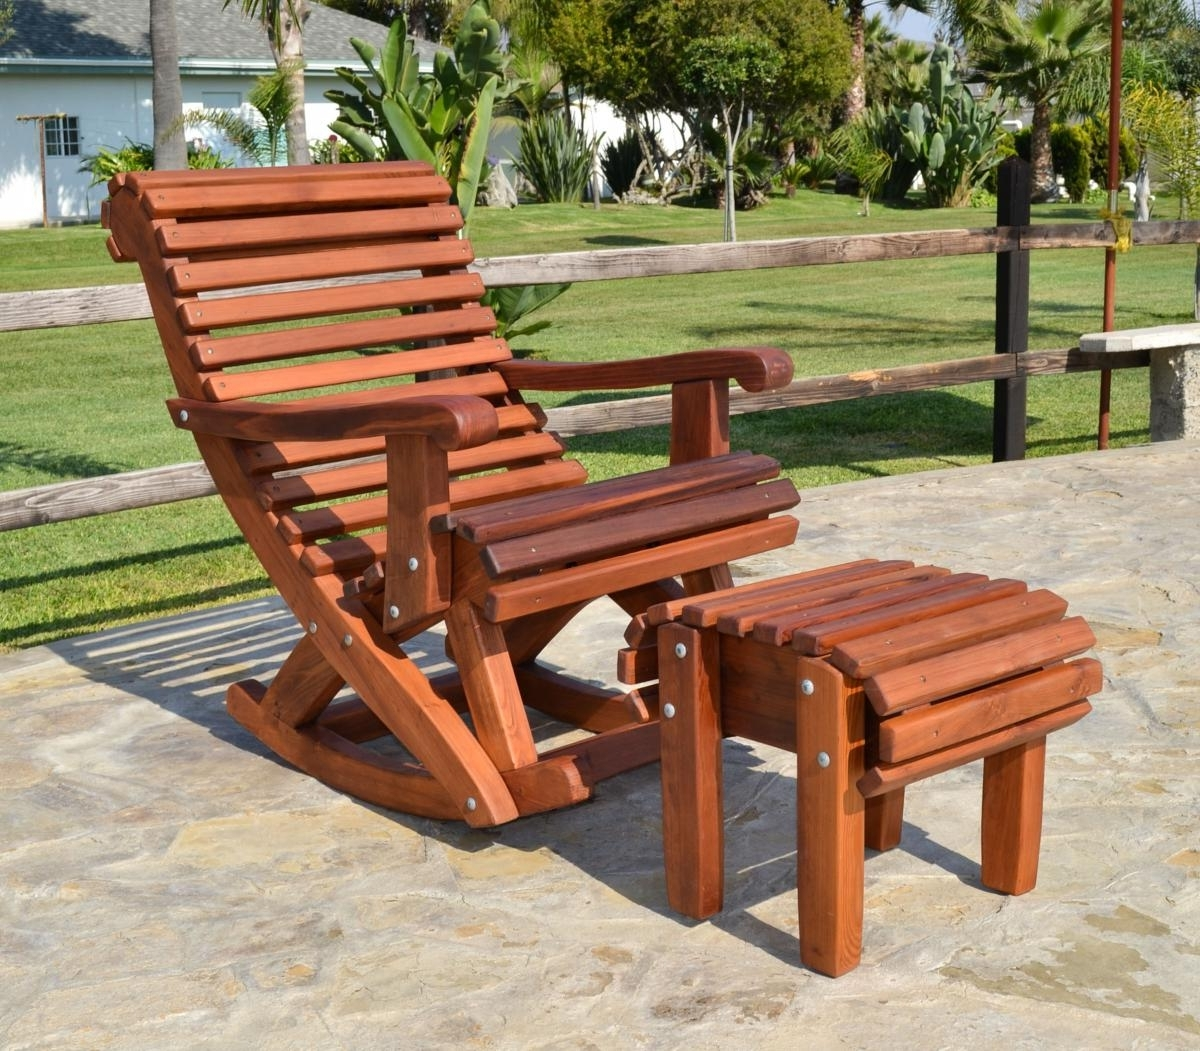 Outdoor Rocking Chairs Style — Nyctophilia Design : Ideas For Paint Inside Fashionable Rocking Chair Outdoor Wooden (View 5 of 15)